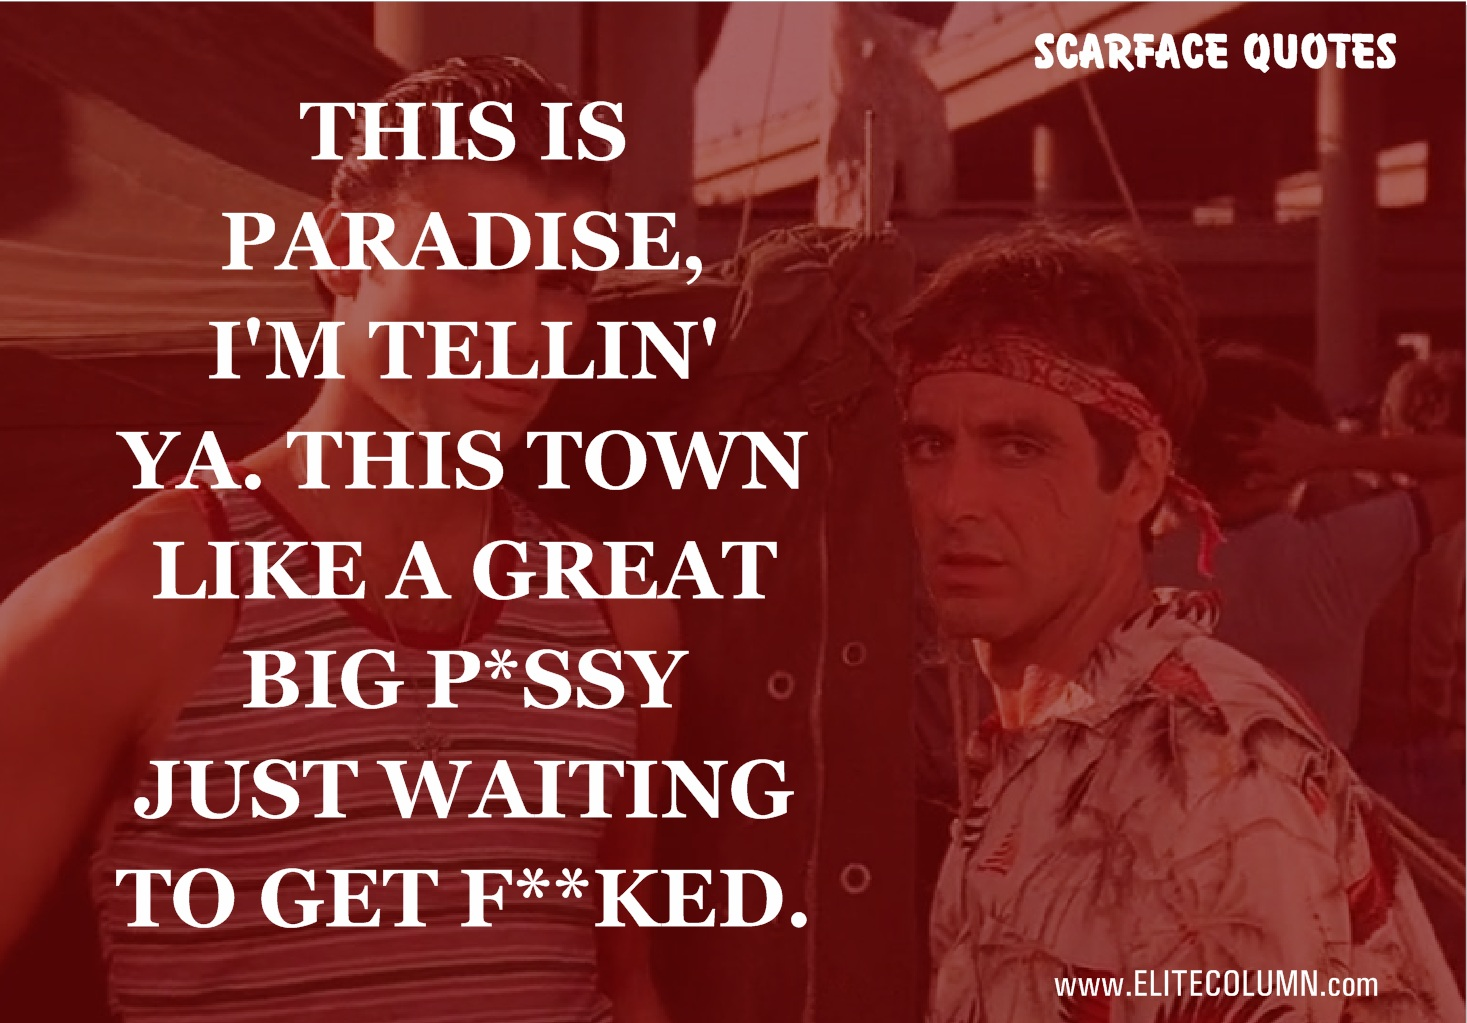 Scarface Quotes (5)